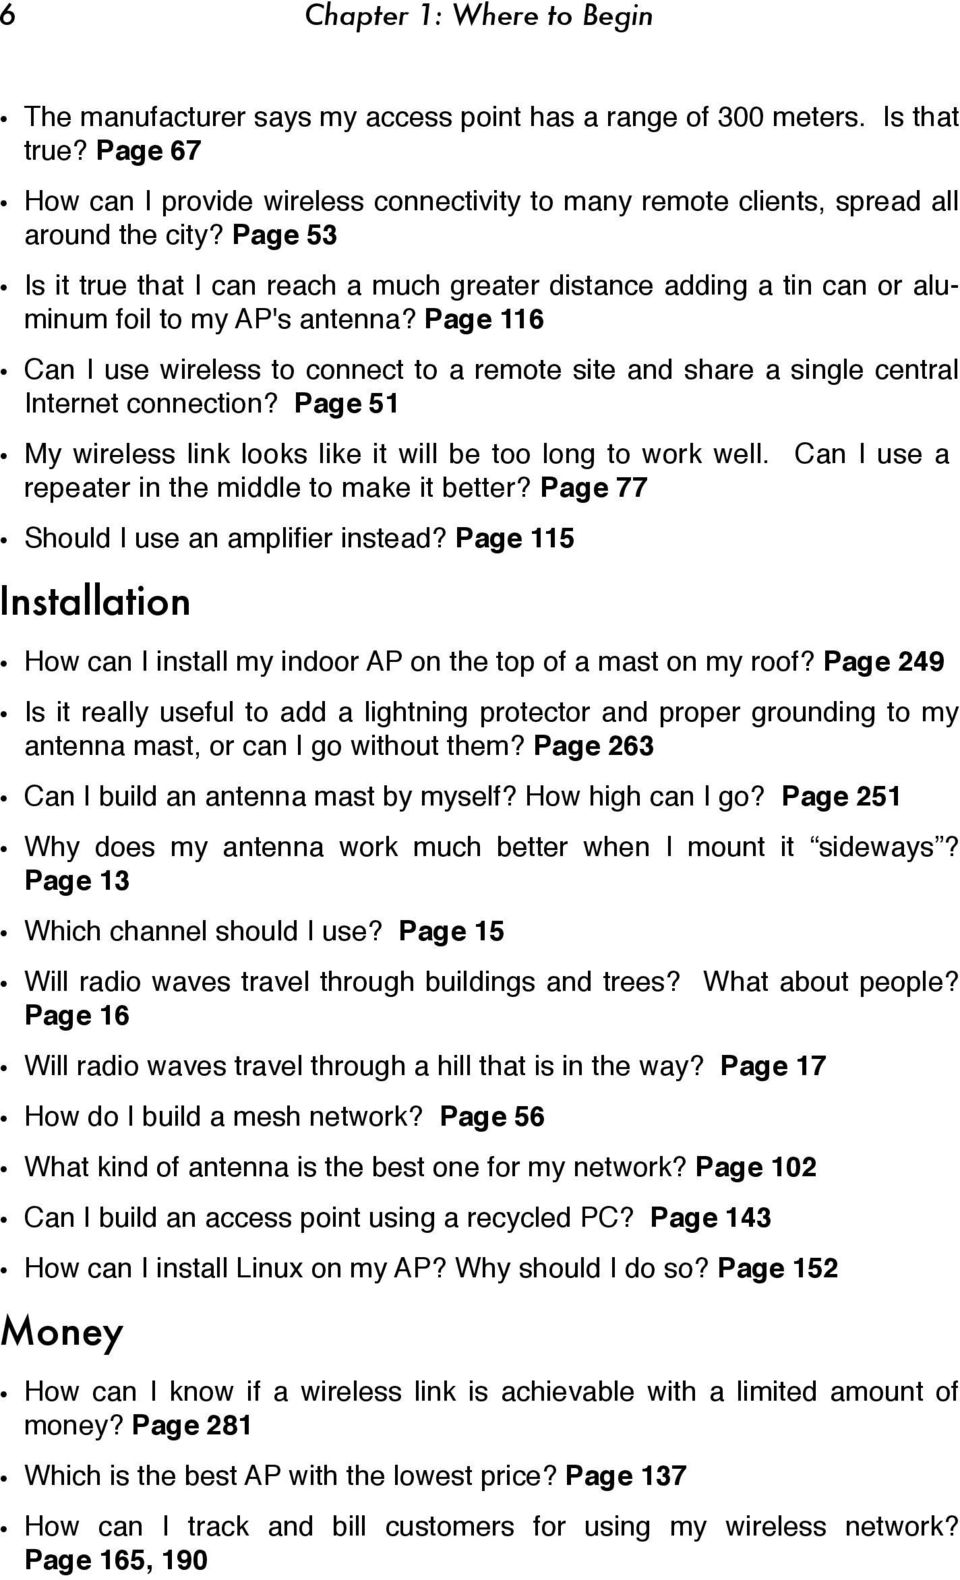 Page 53 Is it true that I can reach a much greater distance adding a tin can or aluminum foil to my AP's antenna?